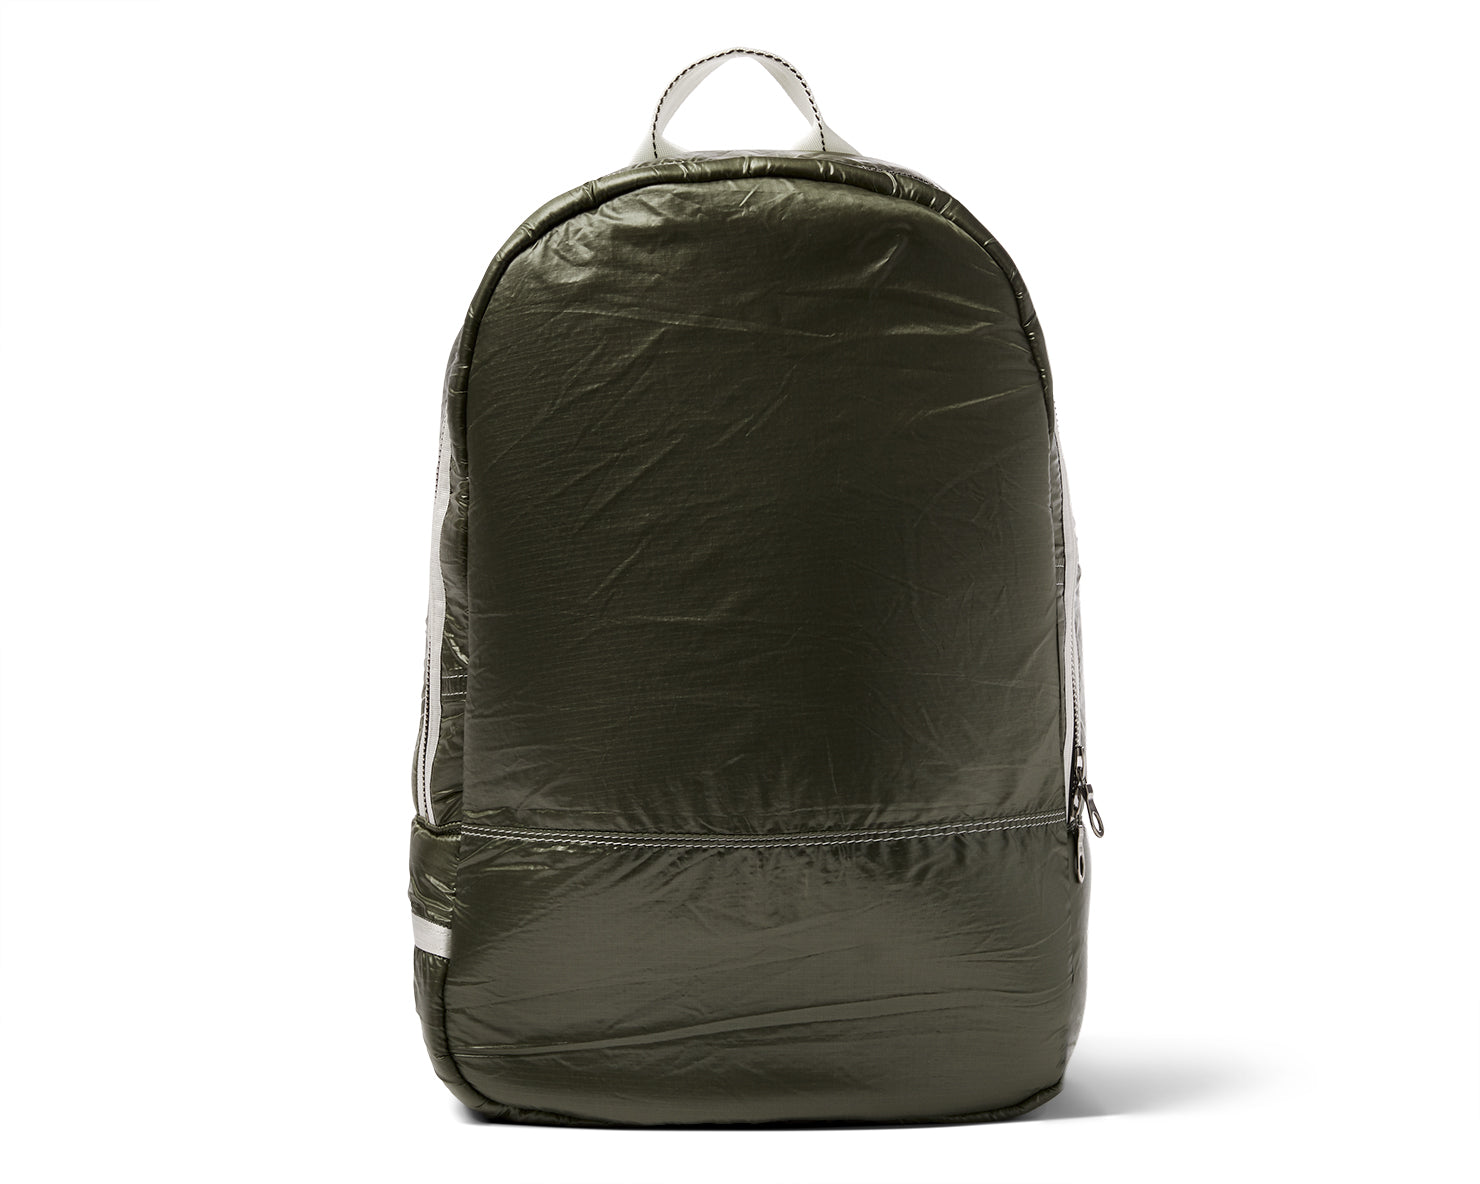 DAYPACK | KILLSPENCER® - Olive Drab Parachute